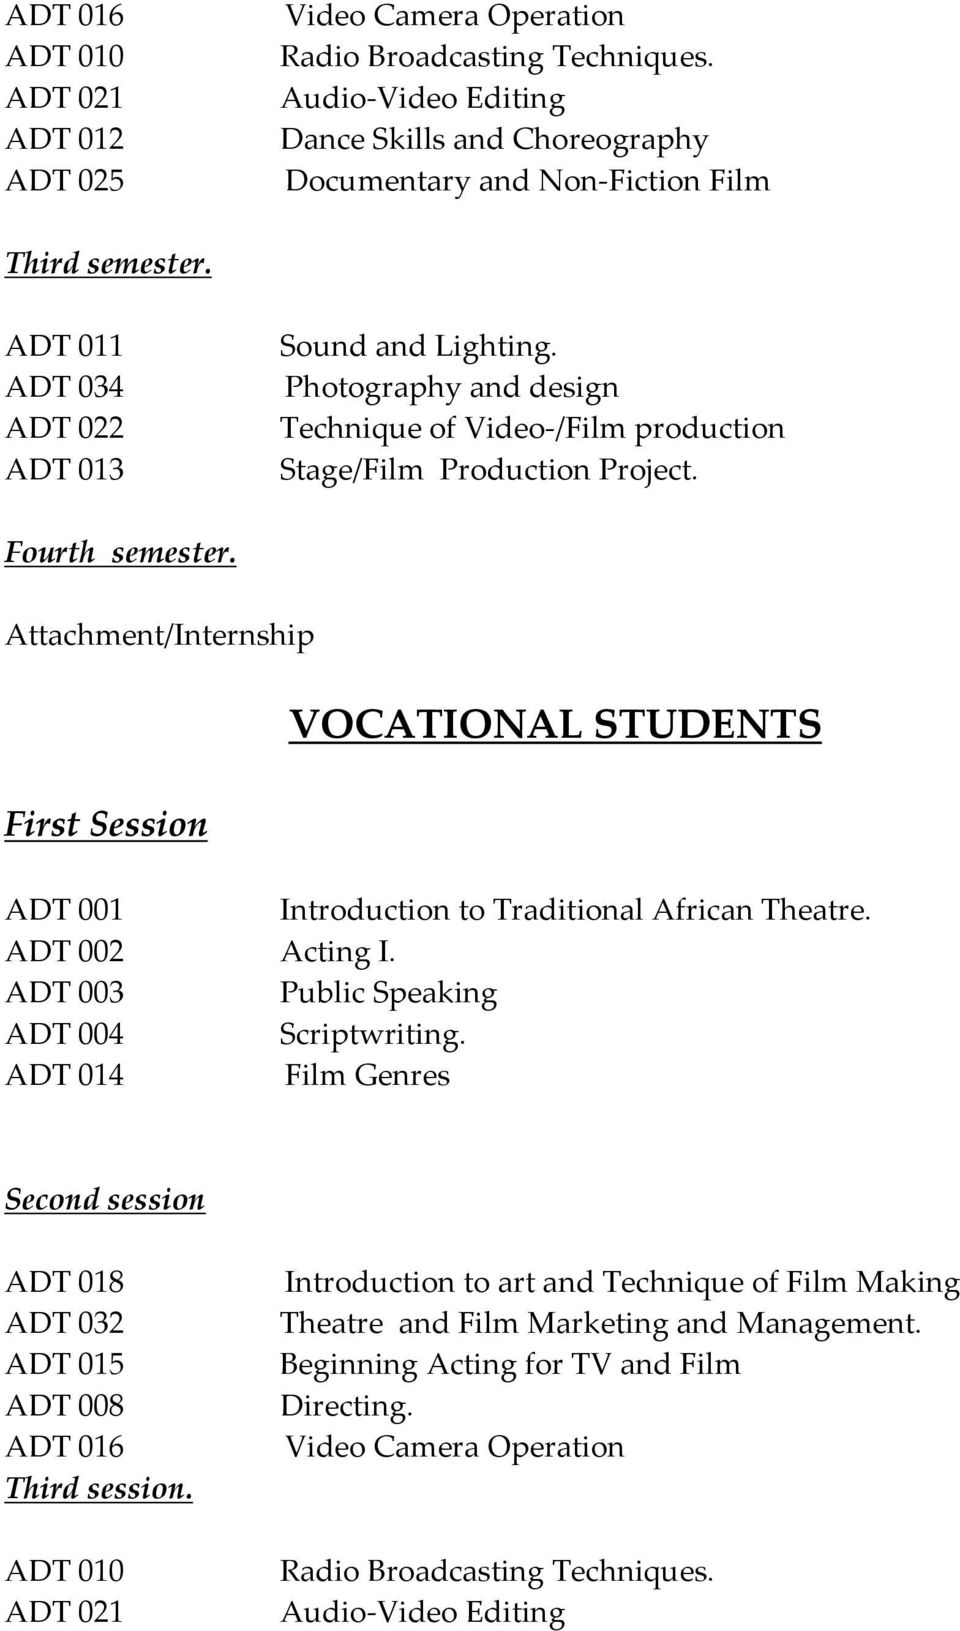 Attachment/Internship VOCATIONAL STUDENTS First Session ADT 001 Introduction to Traditional African Theatre. ADT 002 Acting I. ADT 003 Public Speaking ADT 004 Scriptwriting.